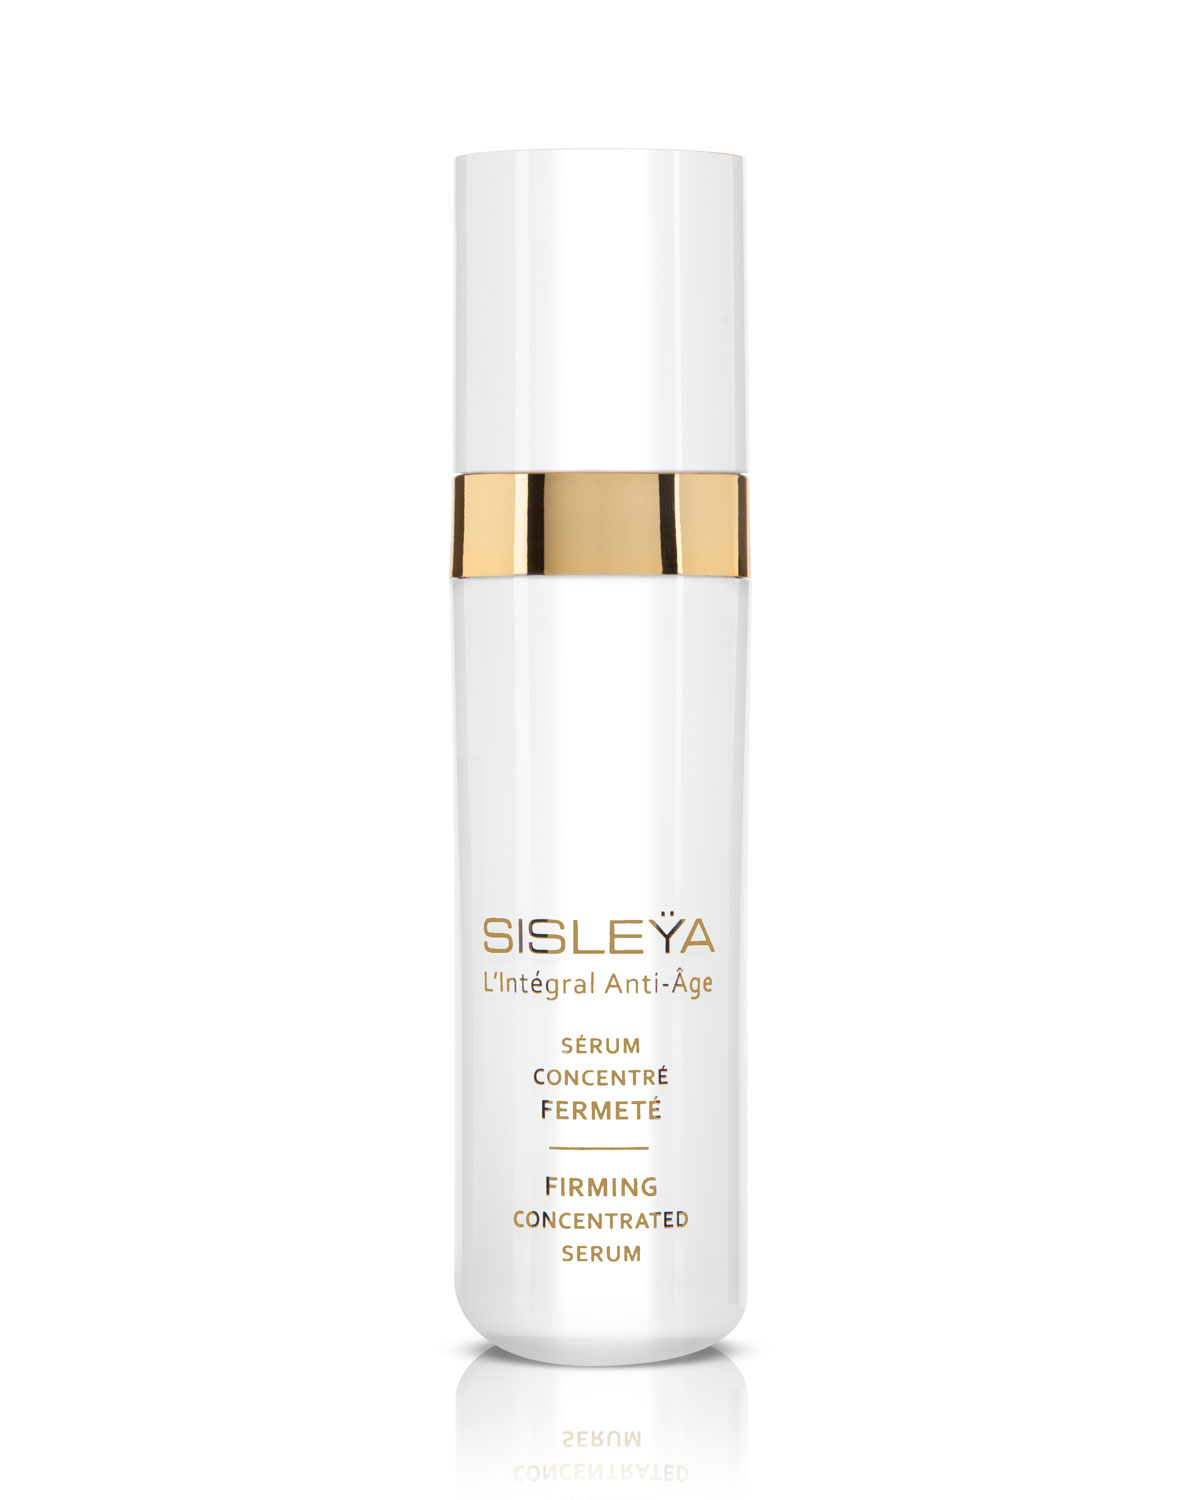 Sisley-Sisleÿa-L'Intégral-Anti-Âge-Firming-Concentrated-Serum-06